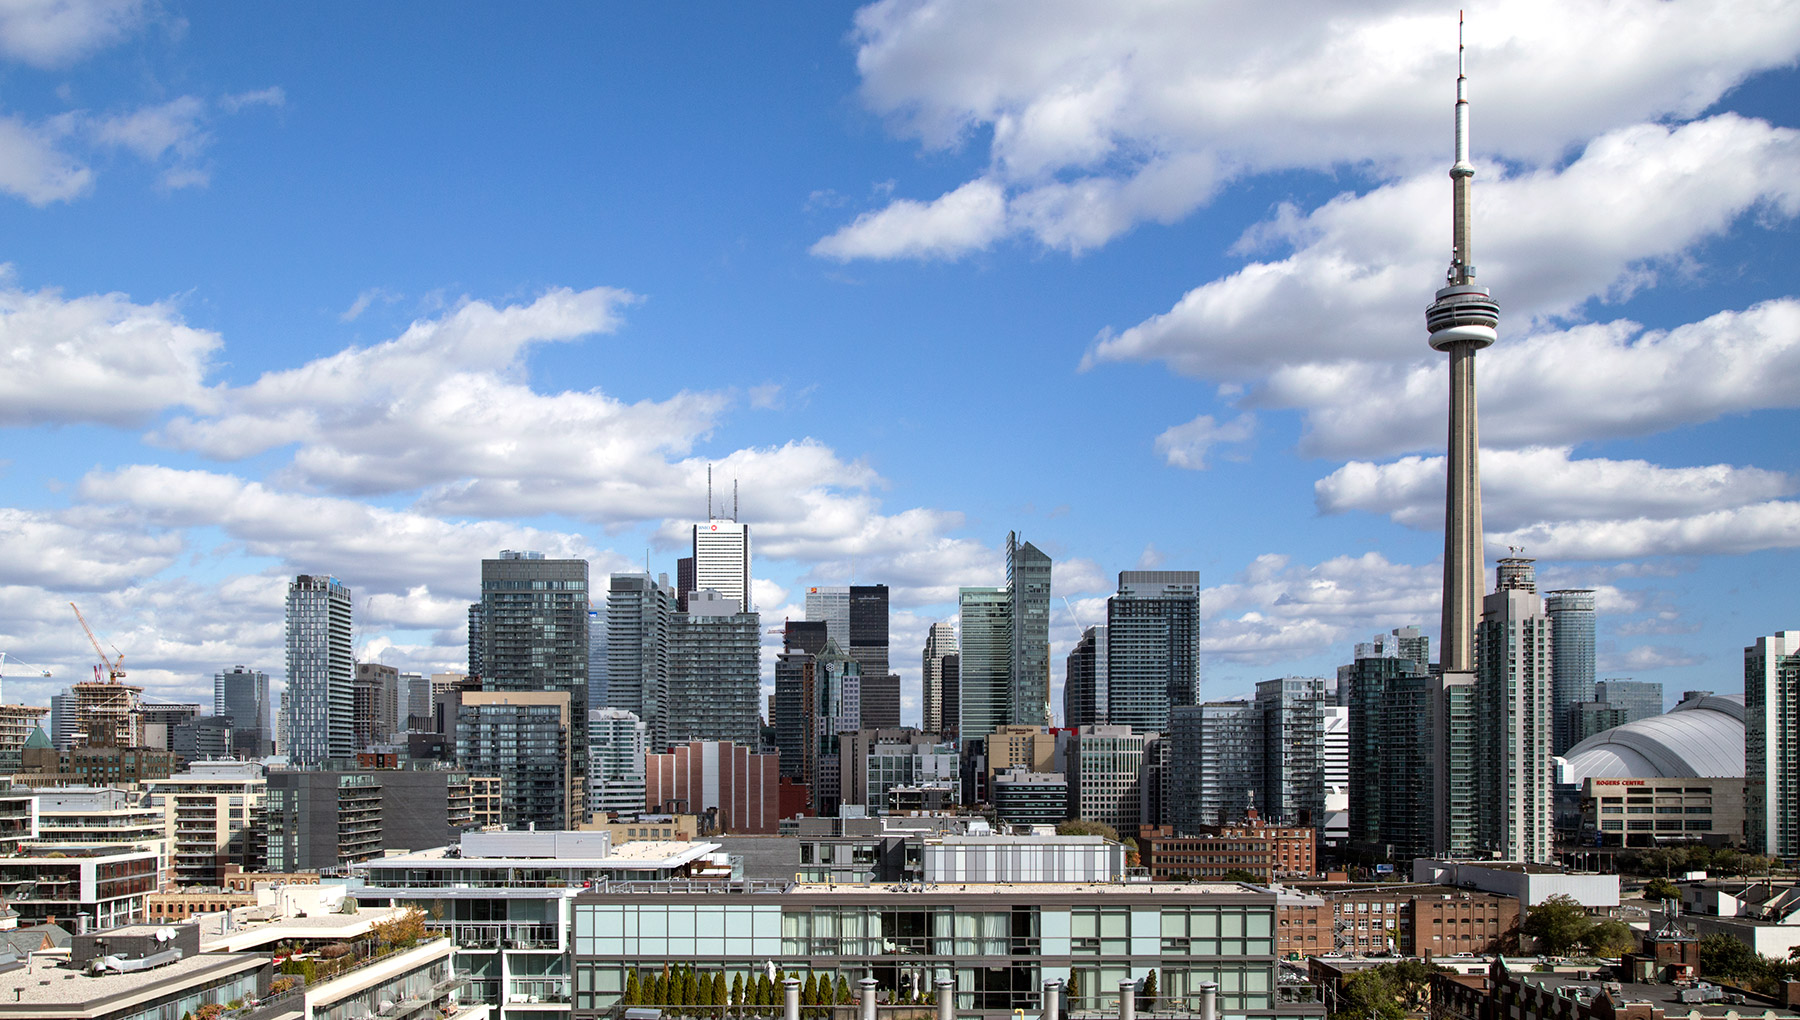 20141116. The Toronto west-facing skyline - still dominated by t